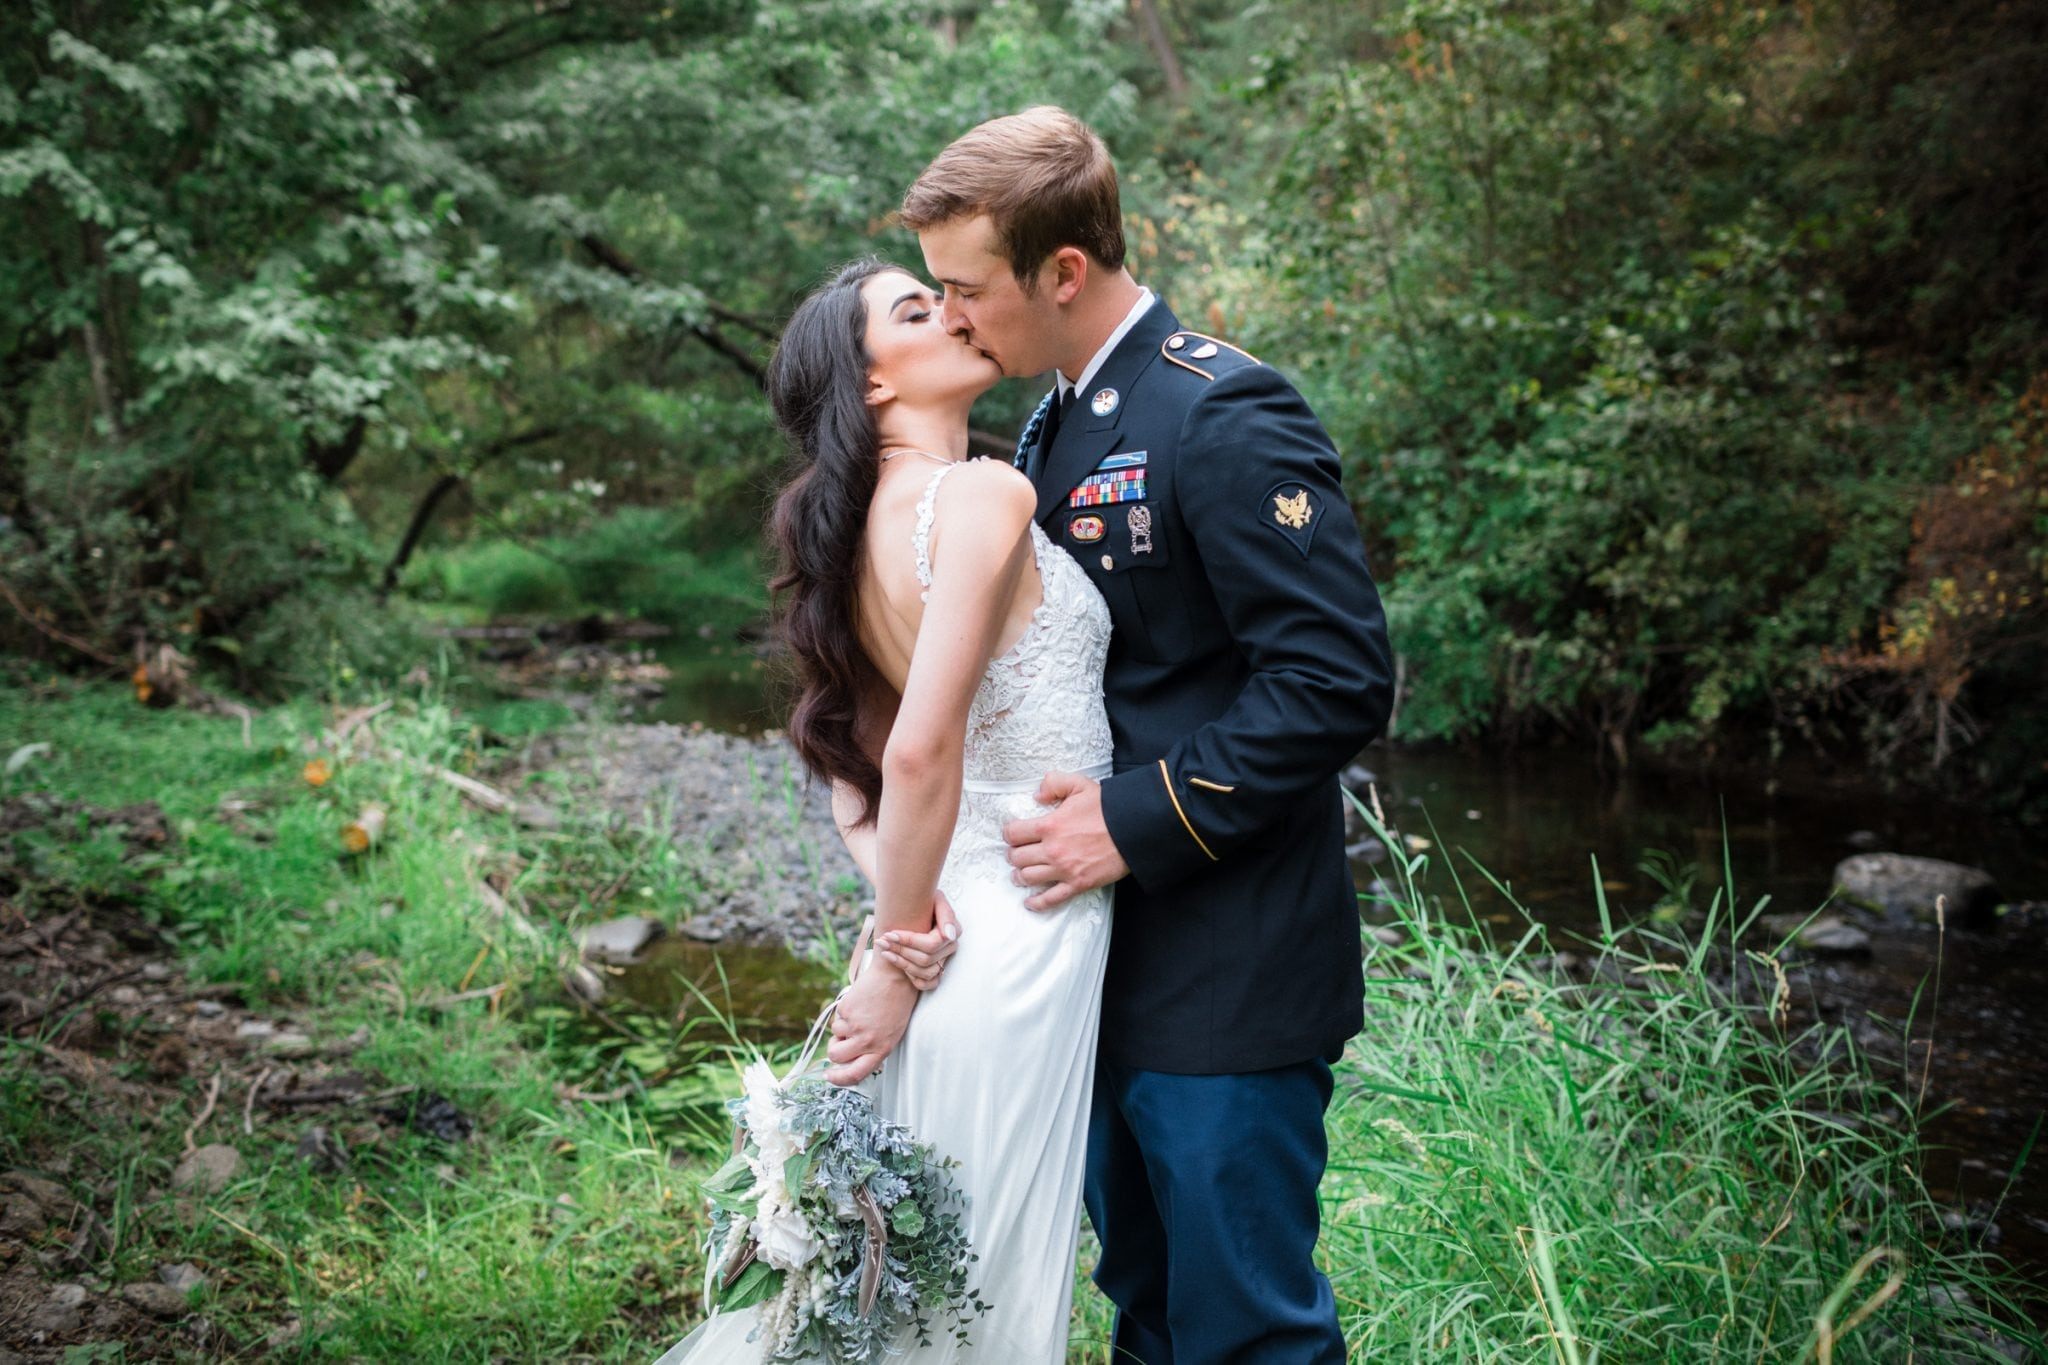 Military wedding photo taken by Franklin Photography